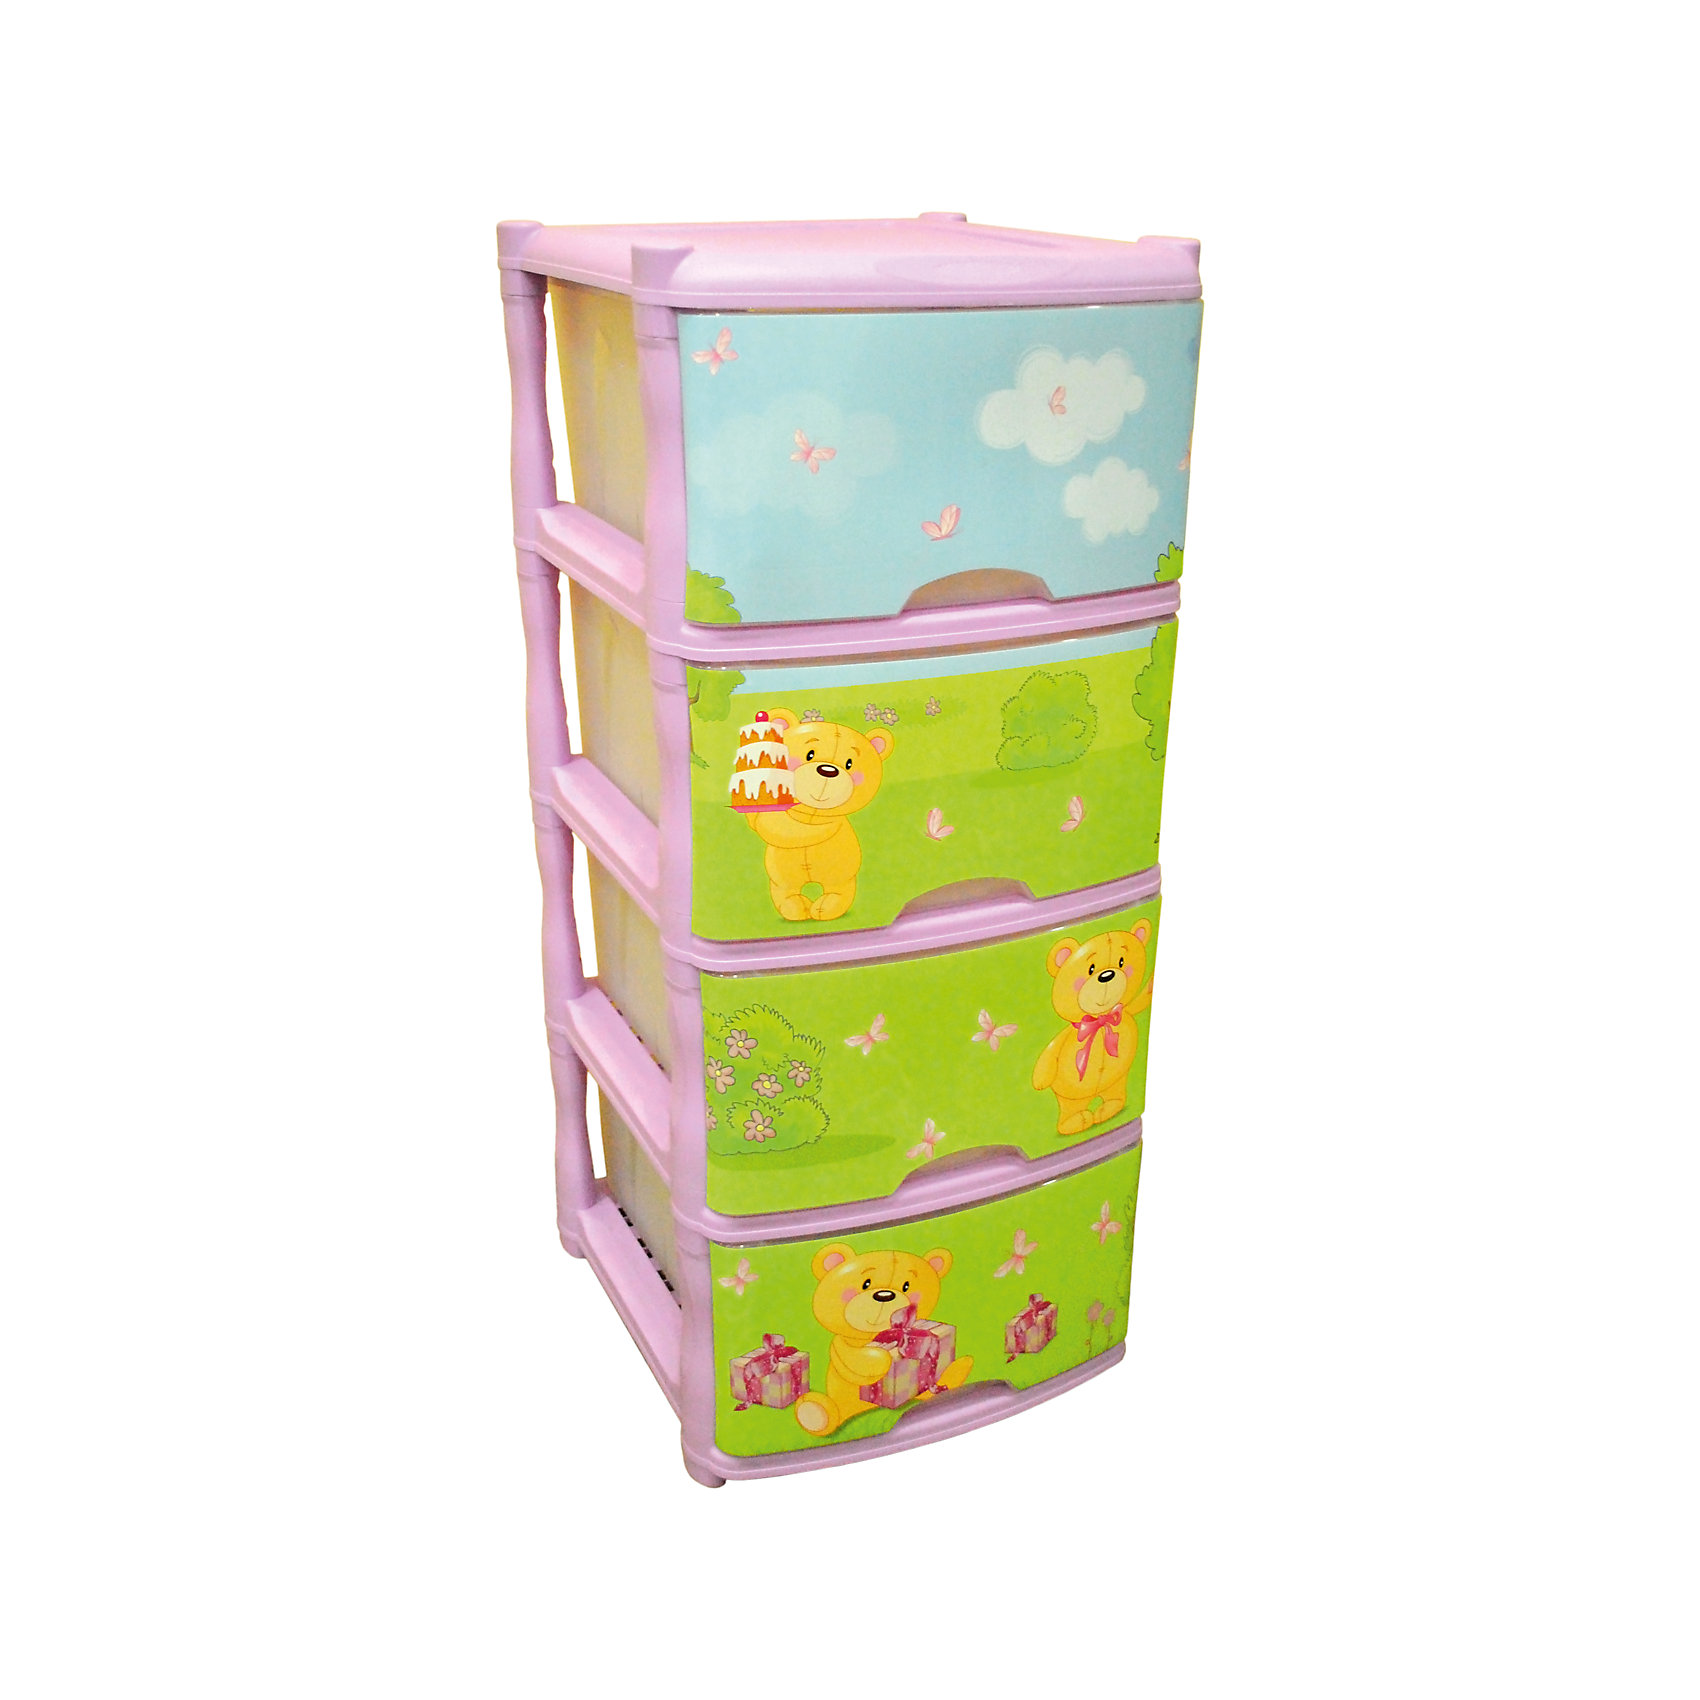 Комод для детской комнаты Bears Tutti 4 ящика, Little Angel, лавандовый от myToys